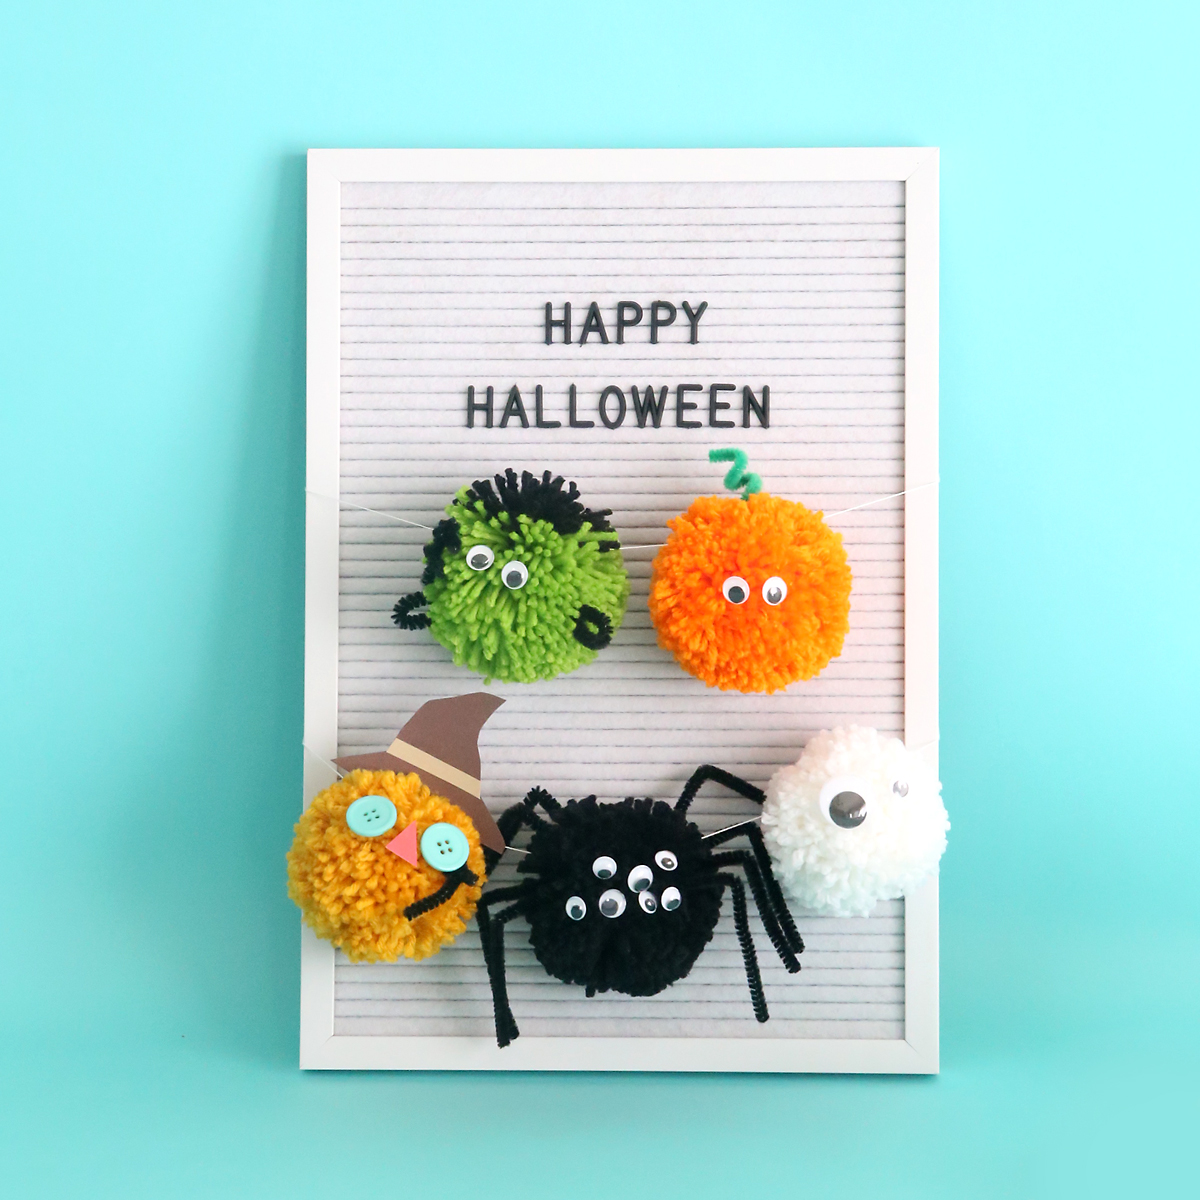 Halloween pom pom pals {easy kids' craft}